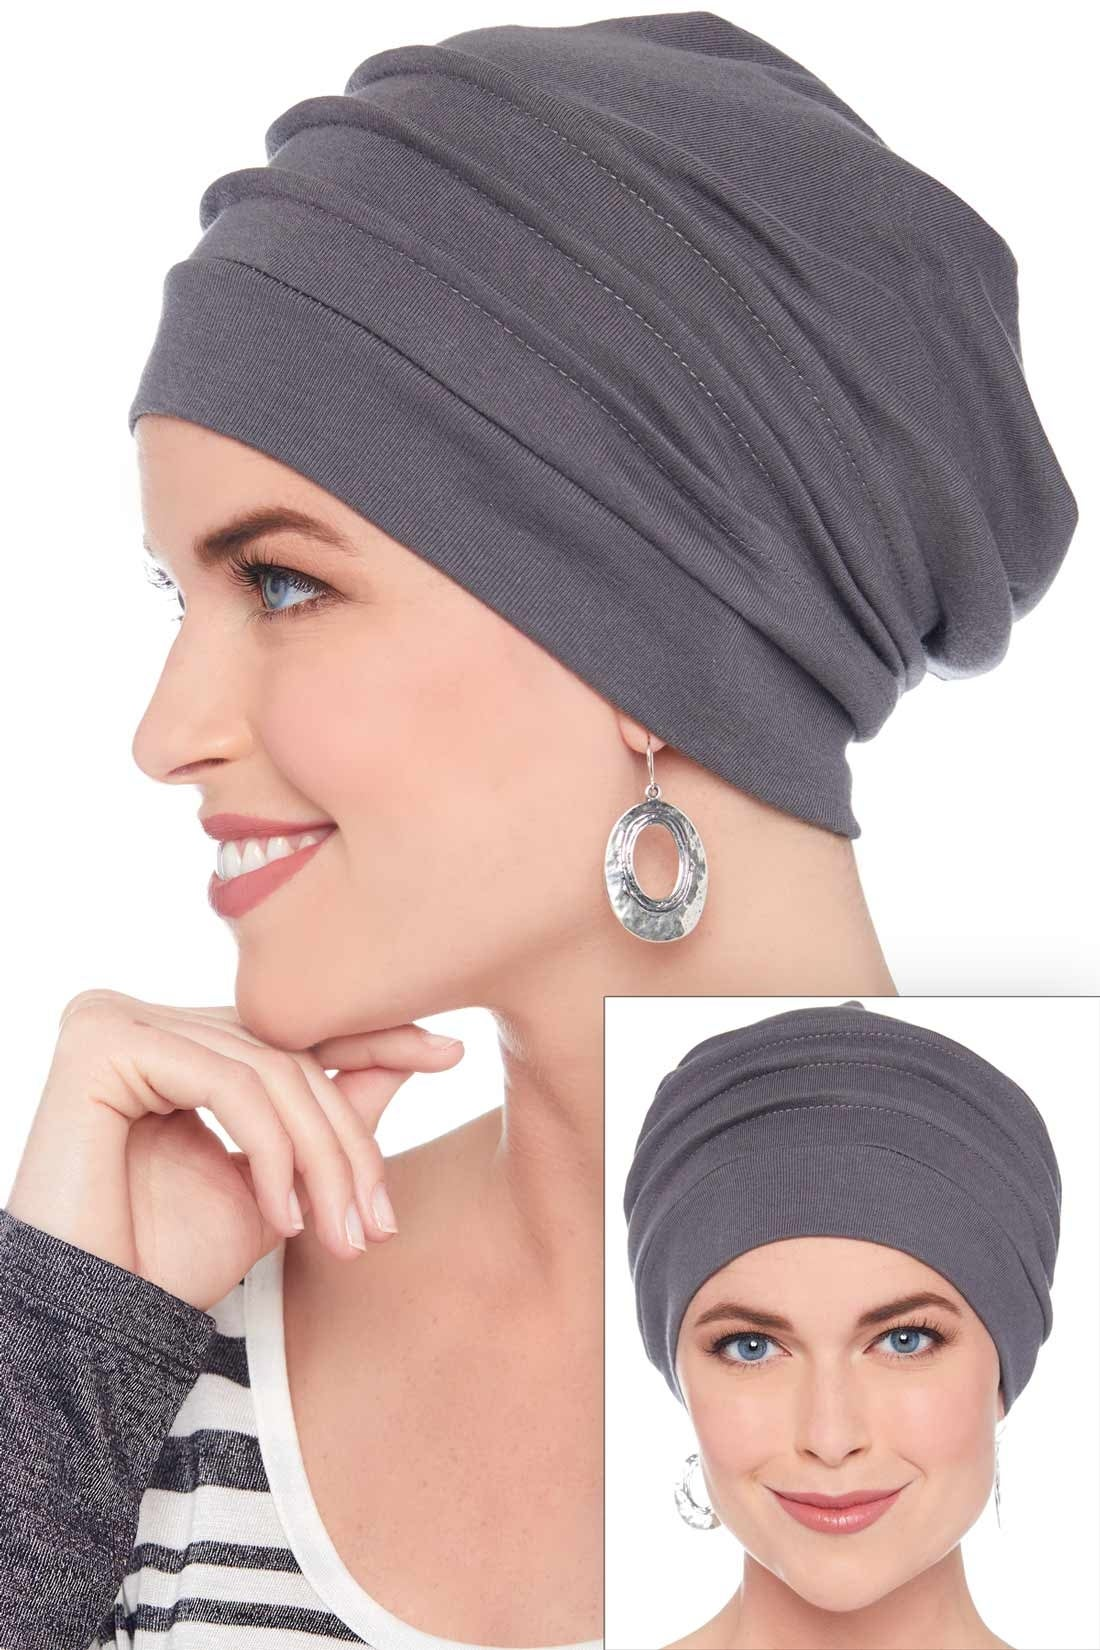 slouchy-snood-cancer-chemo-hats-snoods-caps-for-chemotherapy